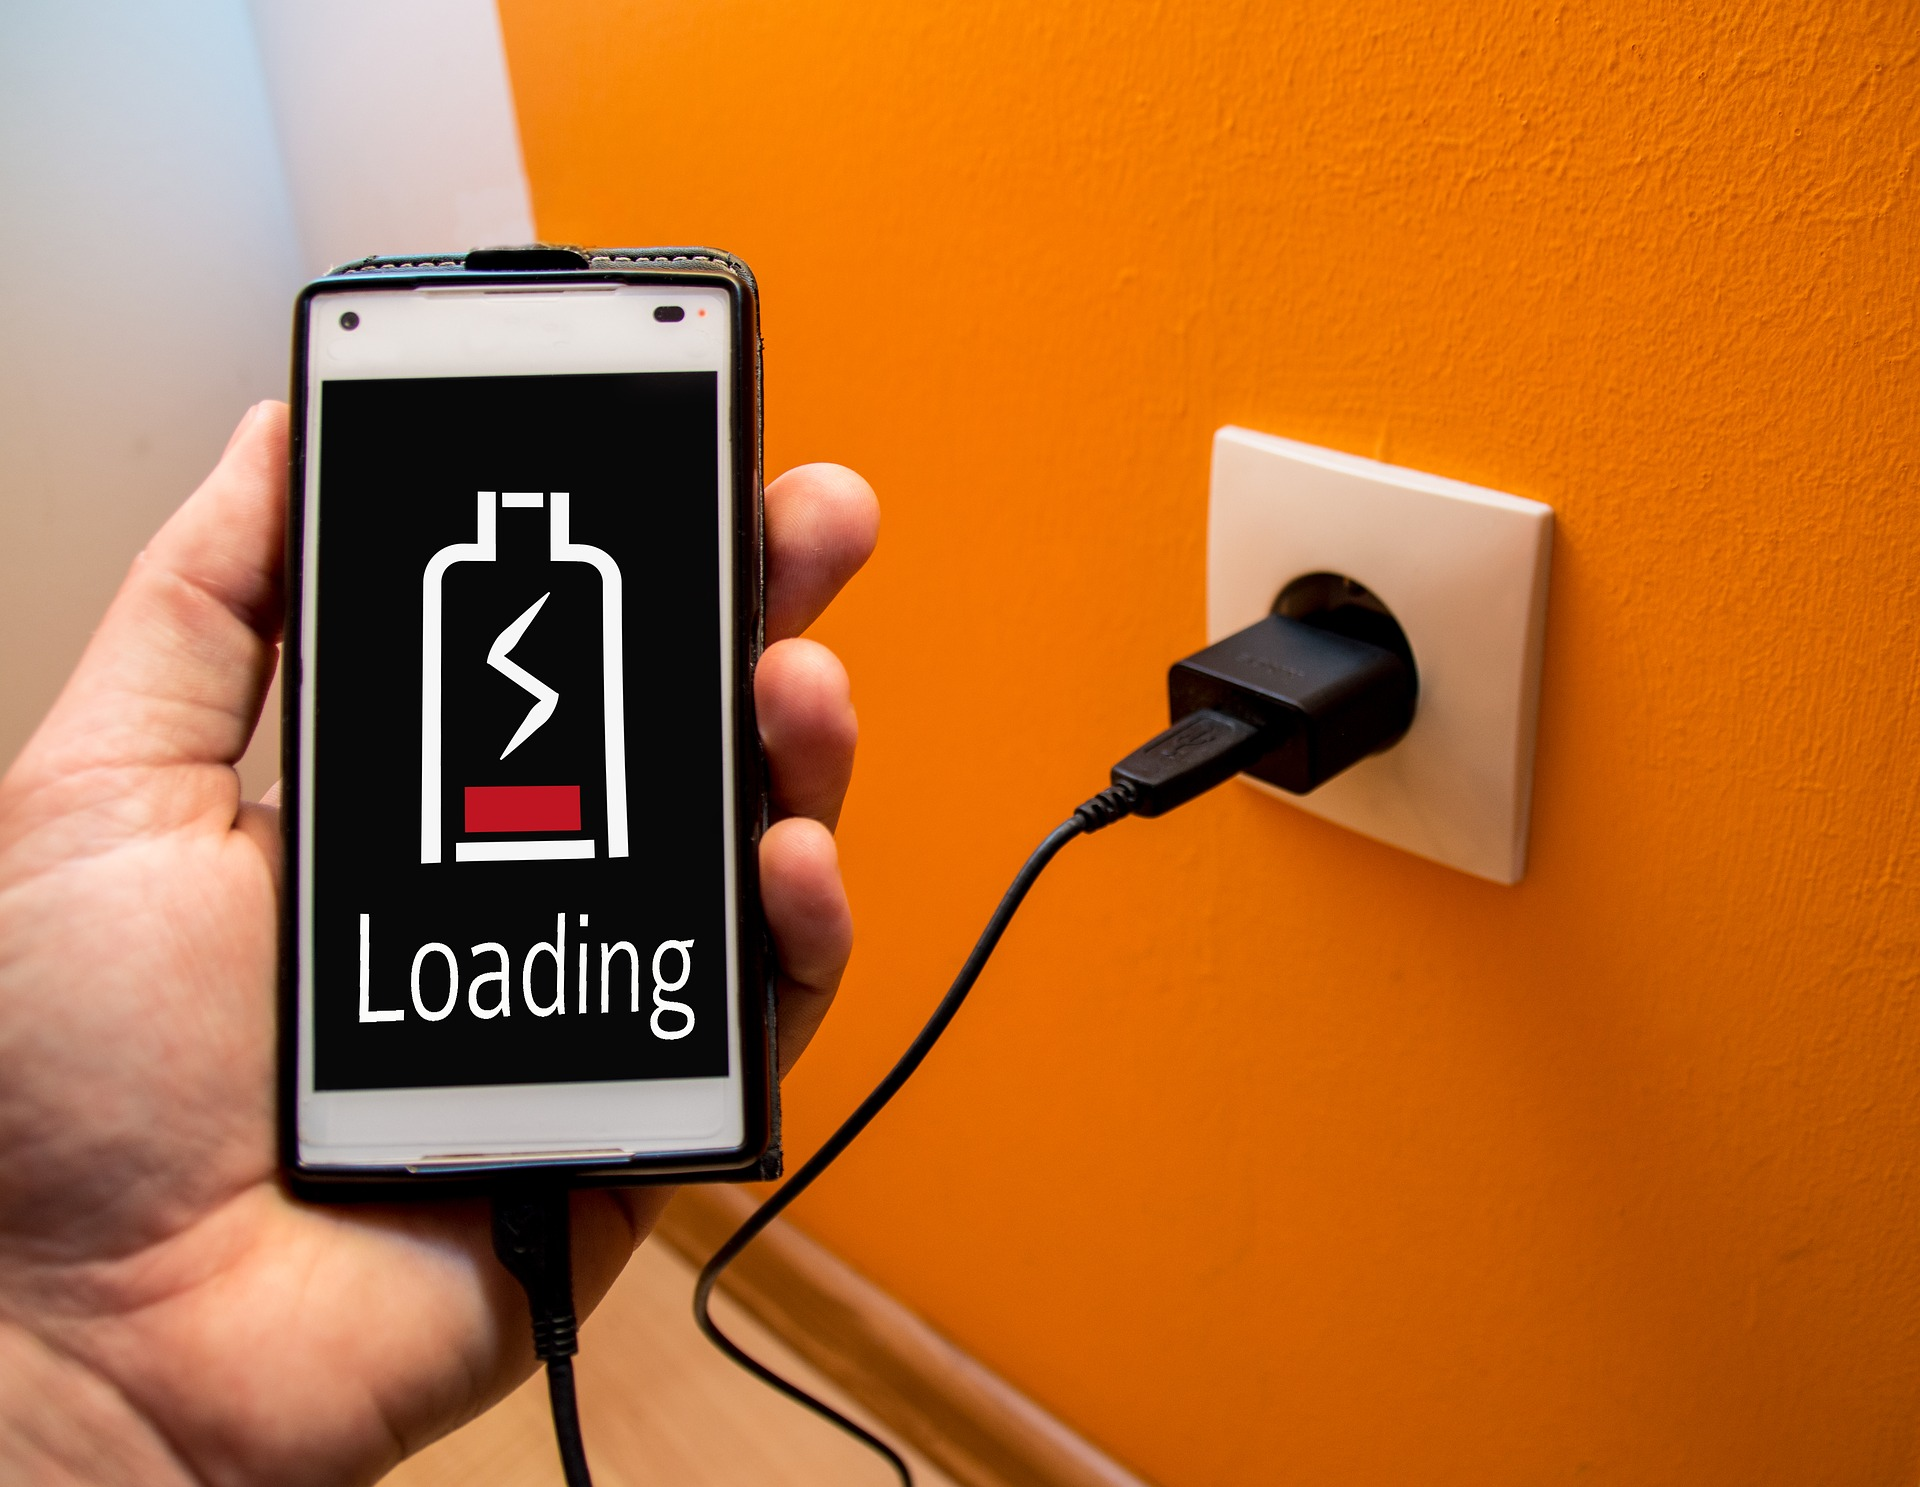 how to charge your phone faster - Power up using a wall charger